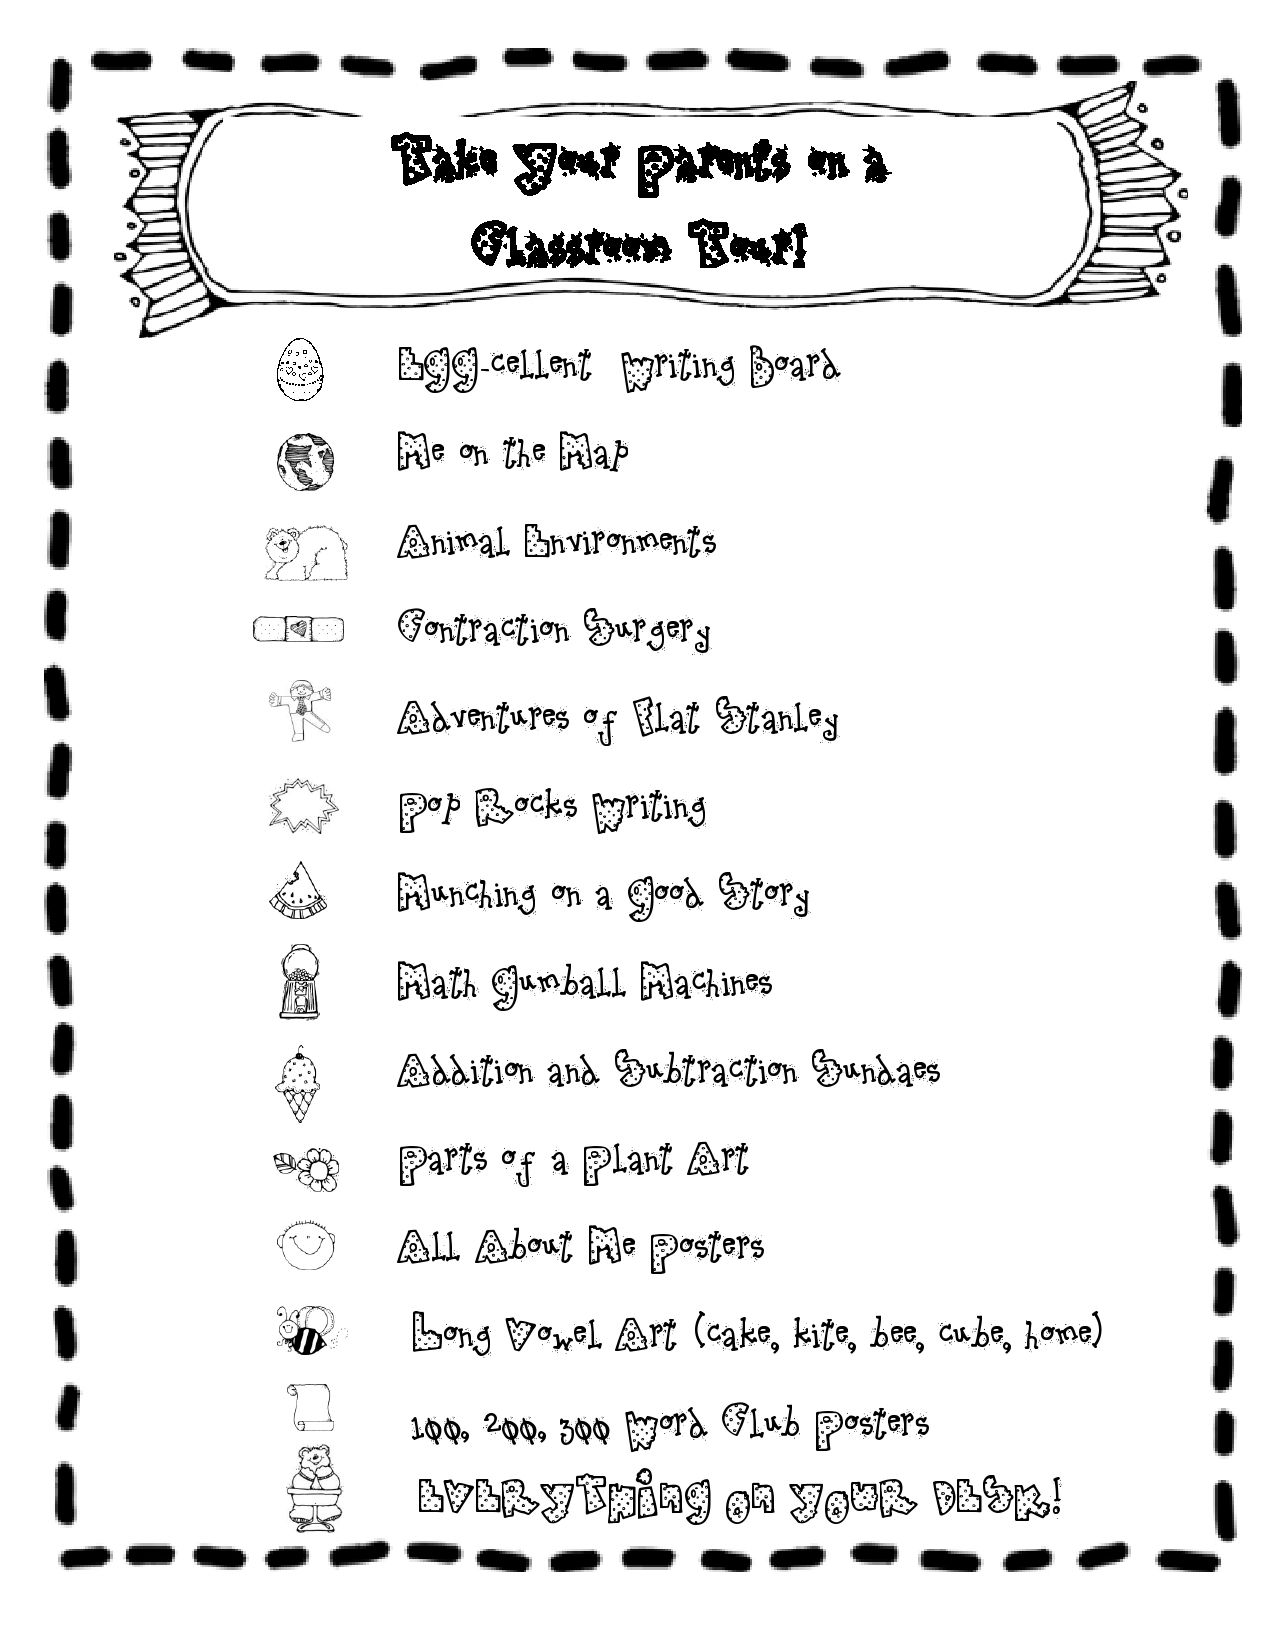 Fun And Visual Open House Checklist So Kids Can Give Their Parents A Tour Of The Classroom